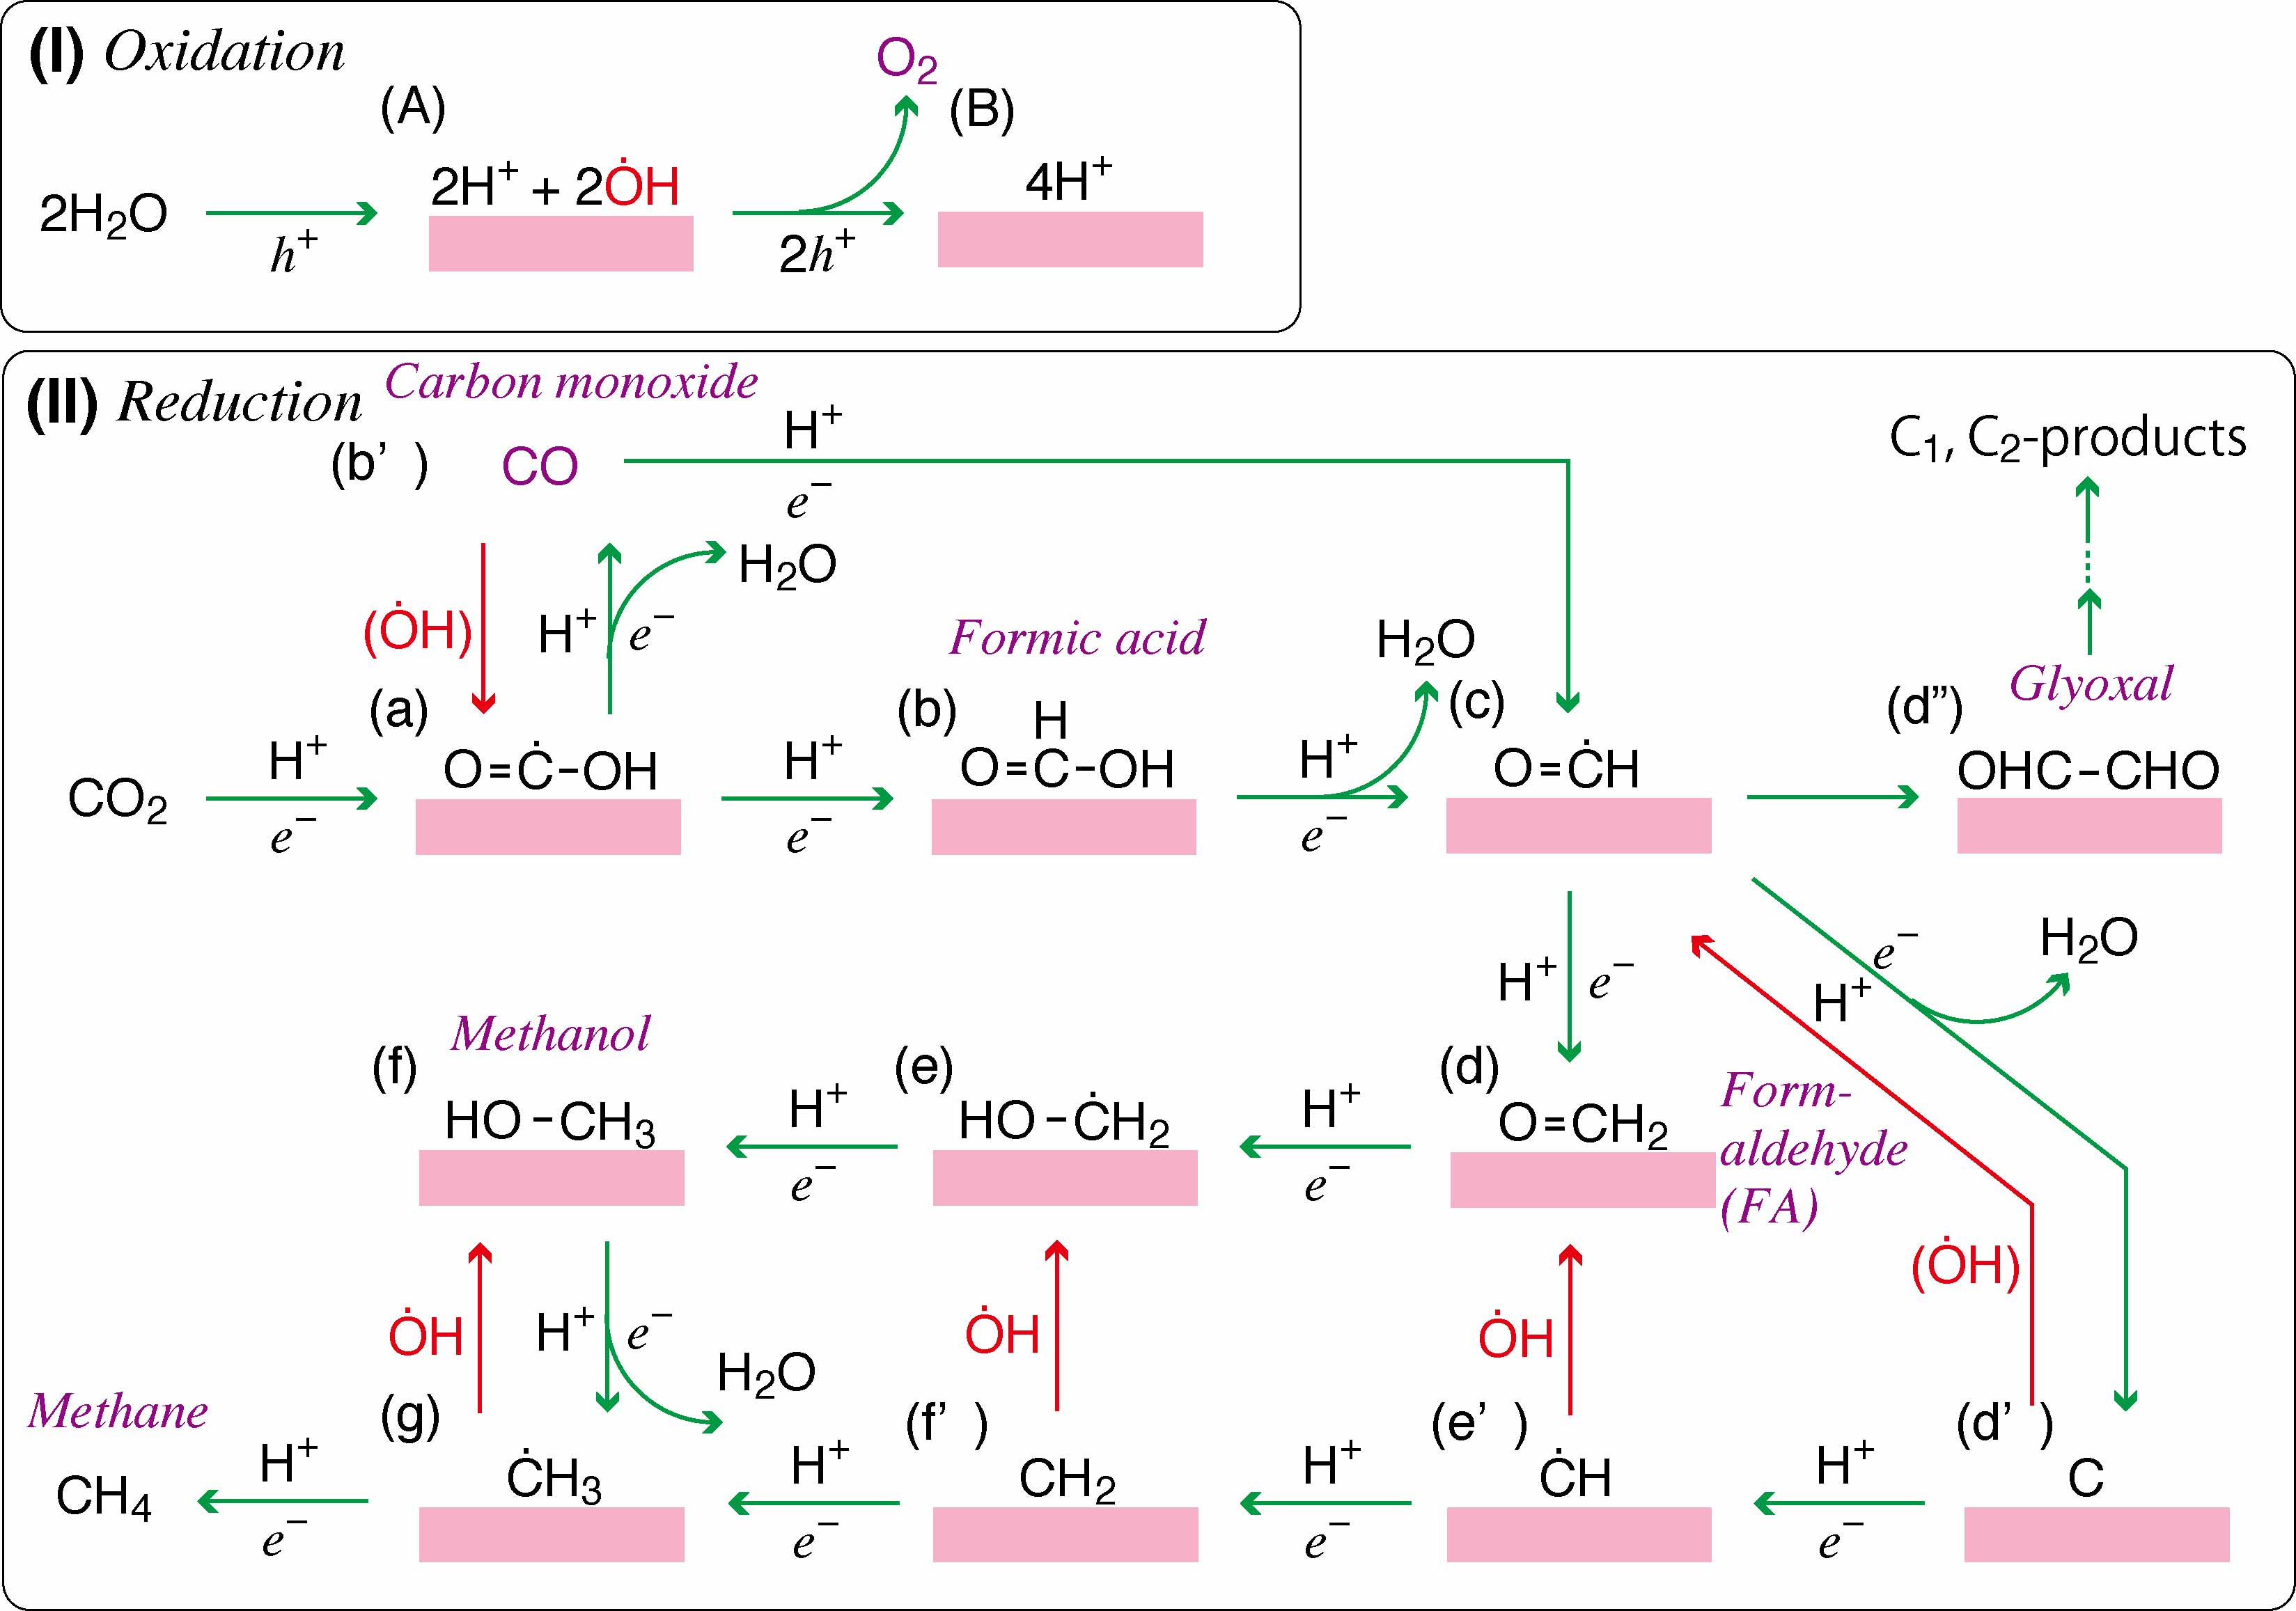 Photoconversion of CO2